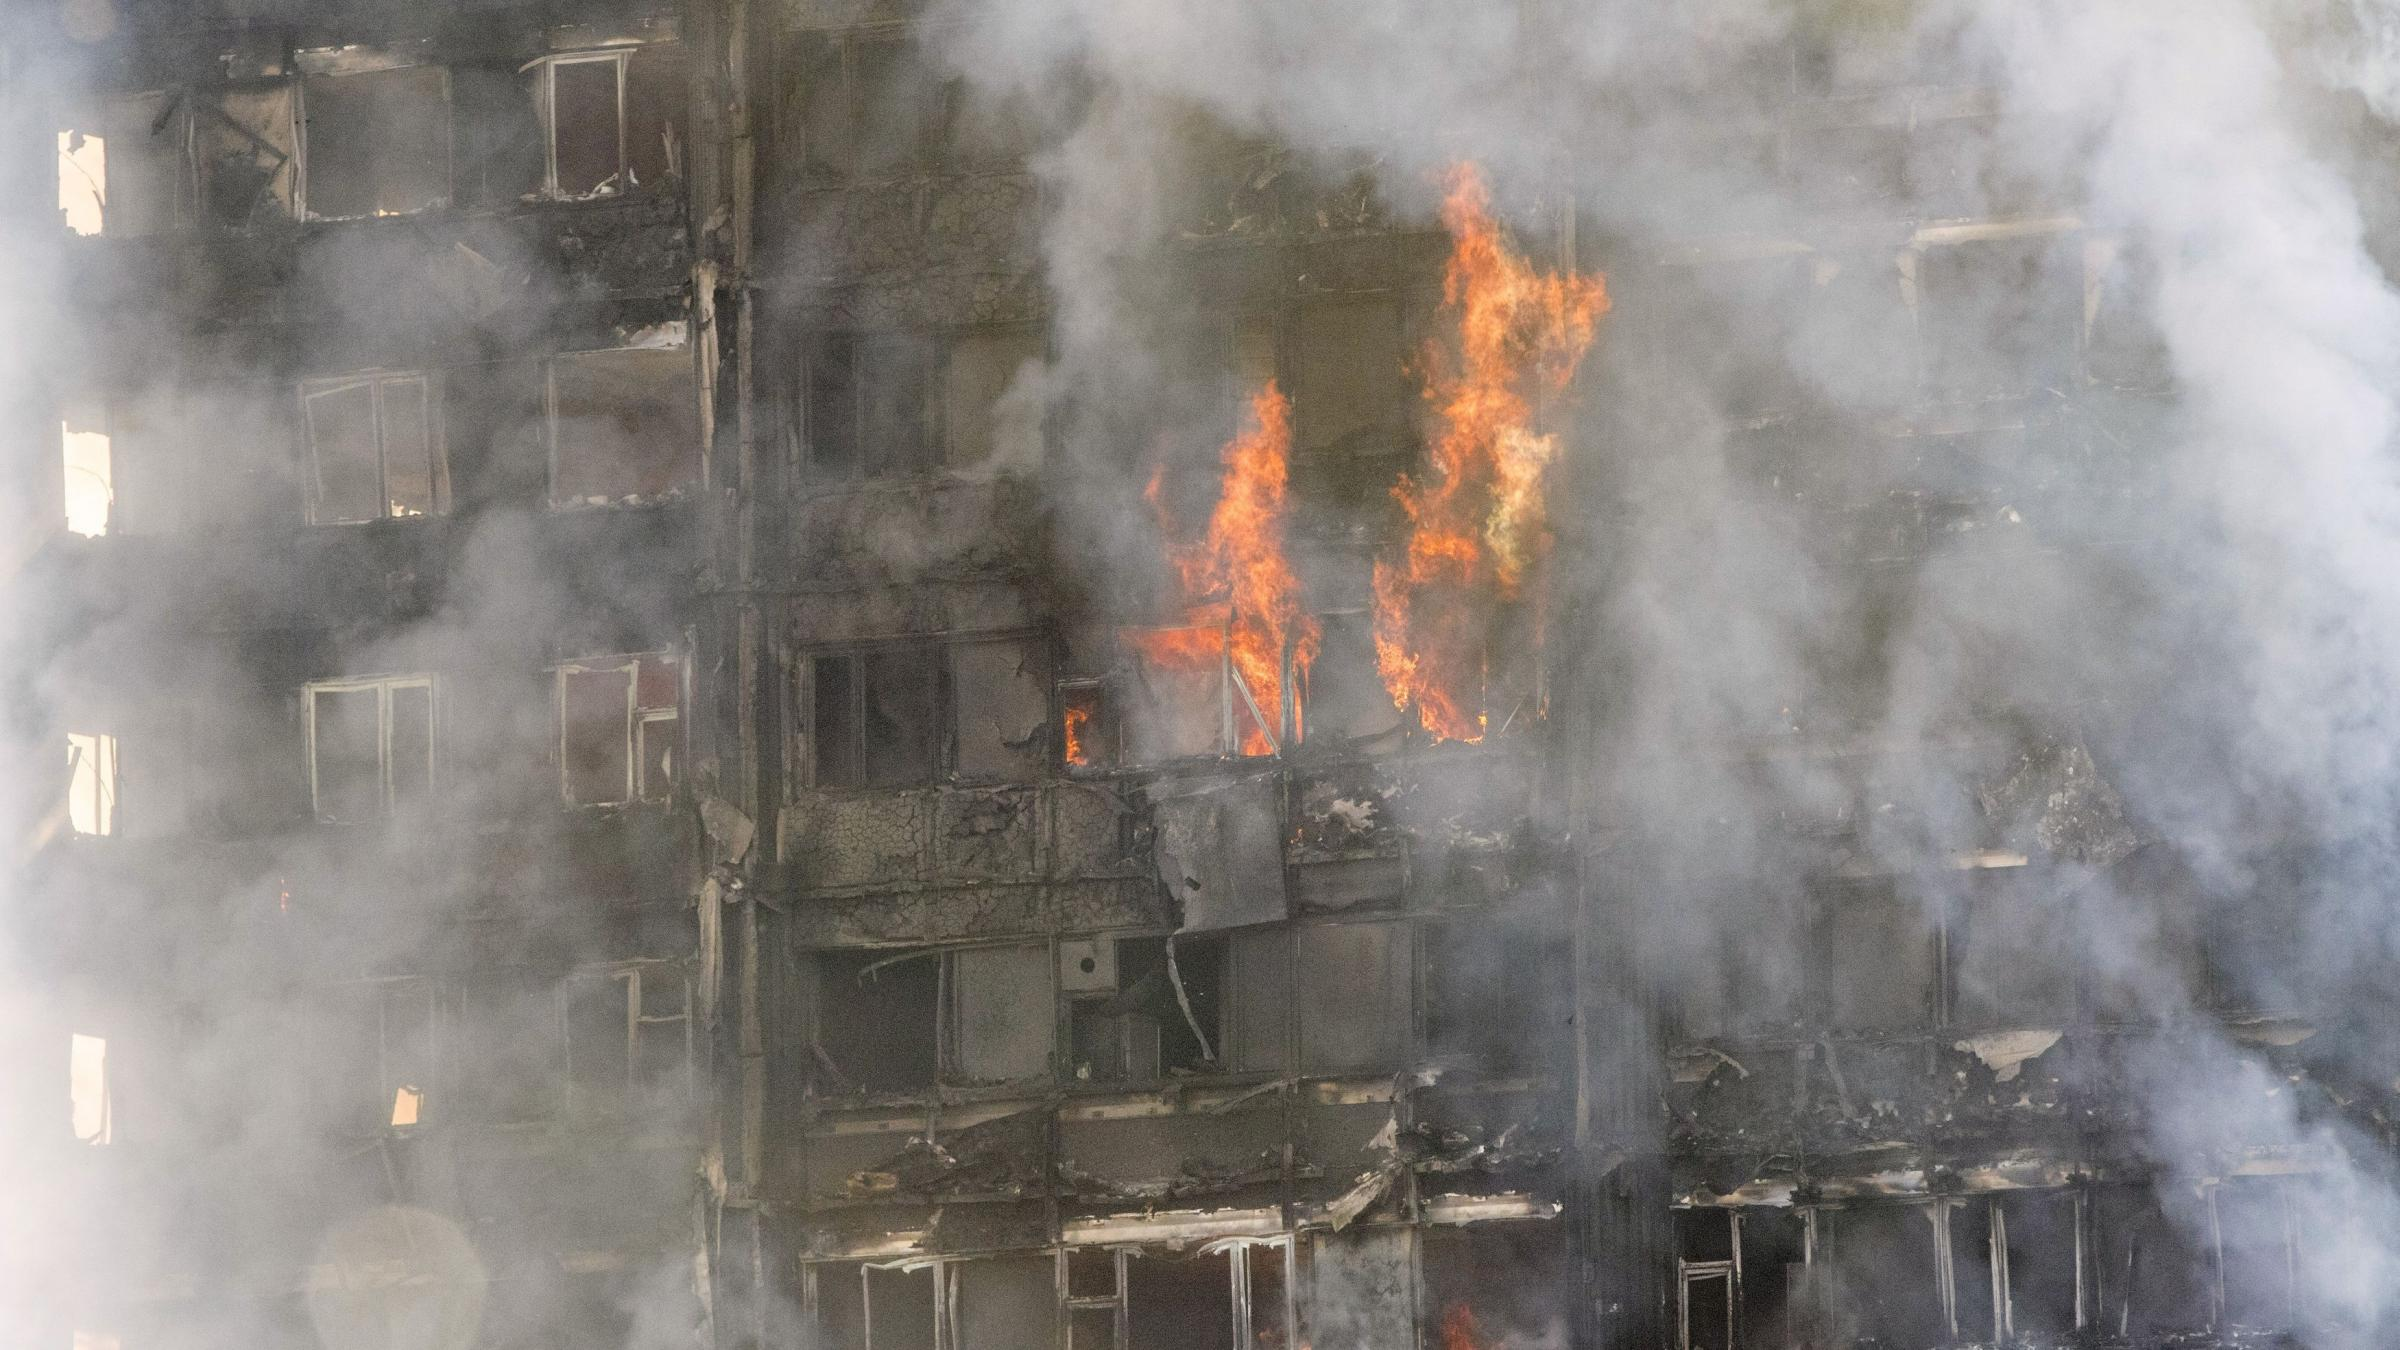 Structural engineer monitoring stability of London tower block hit by fire